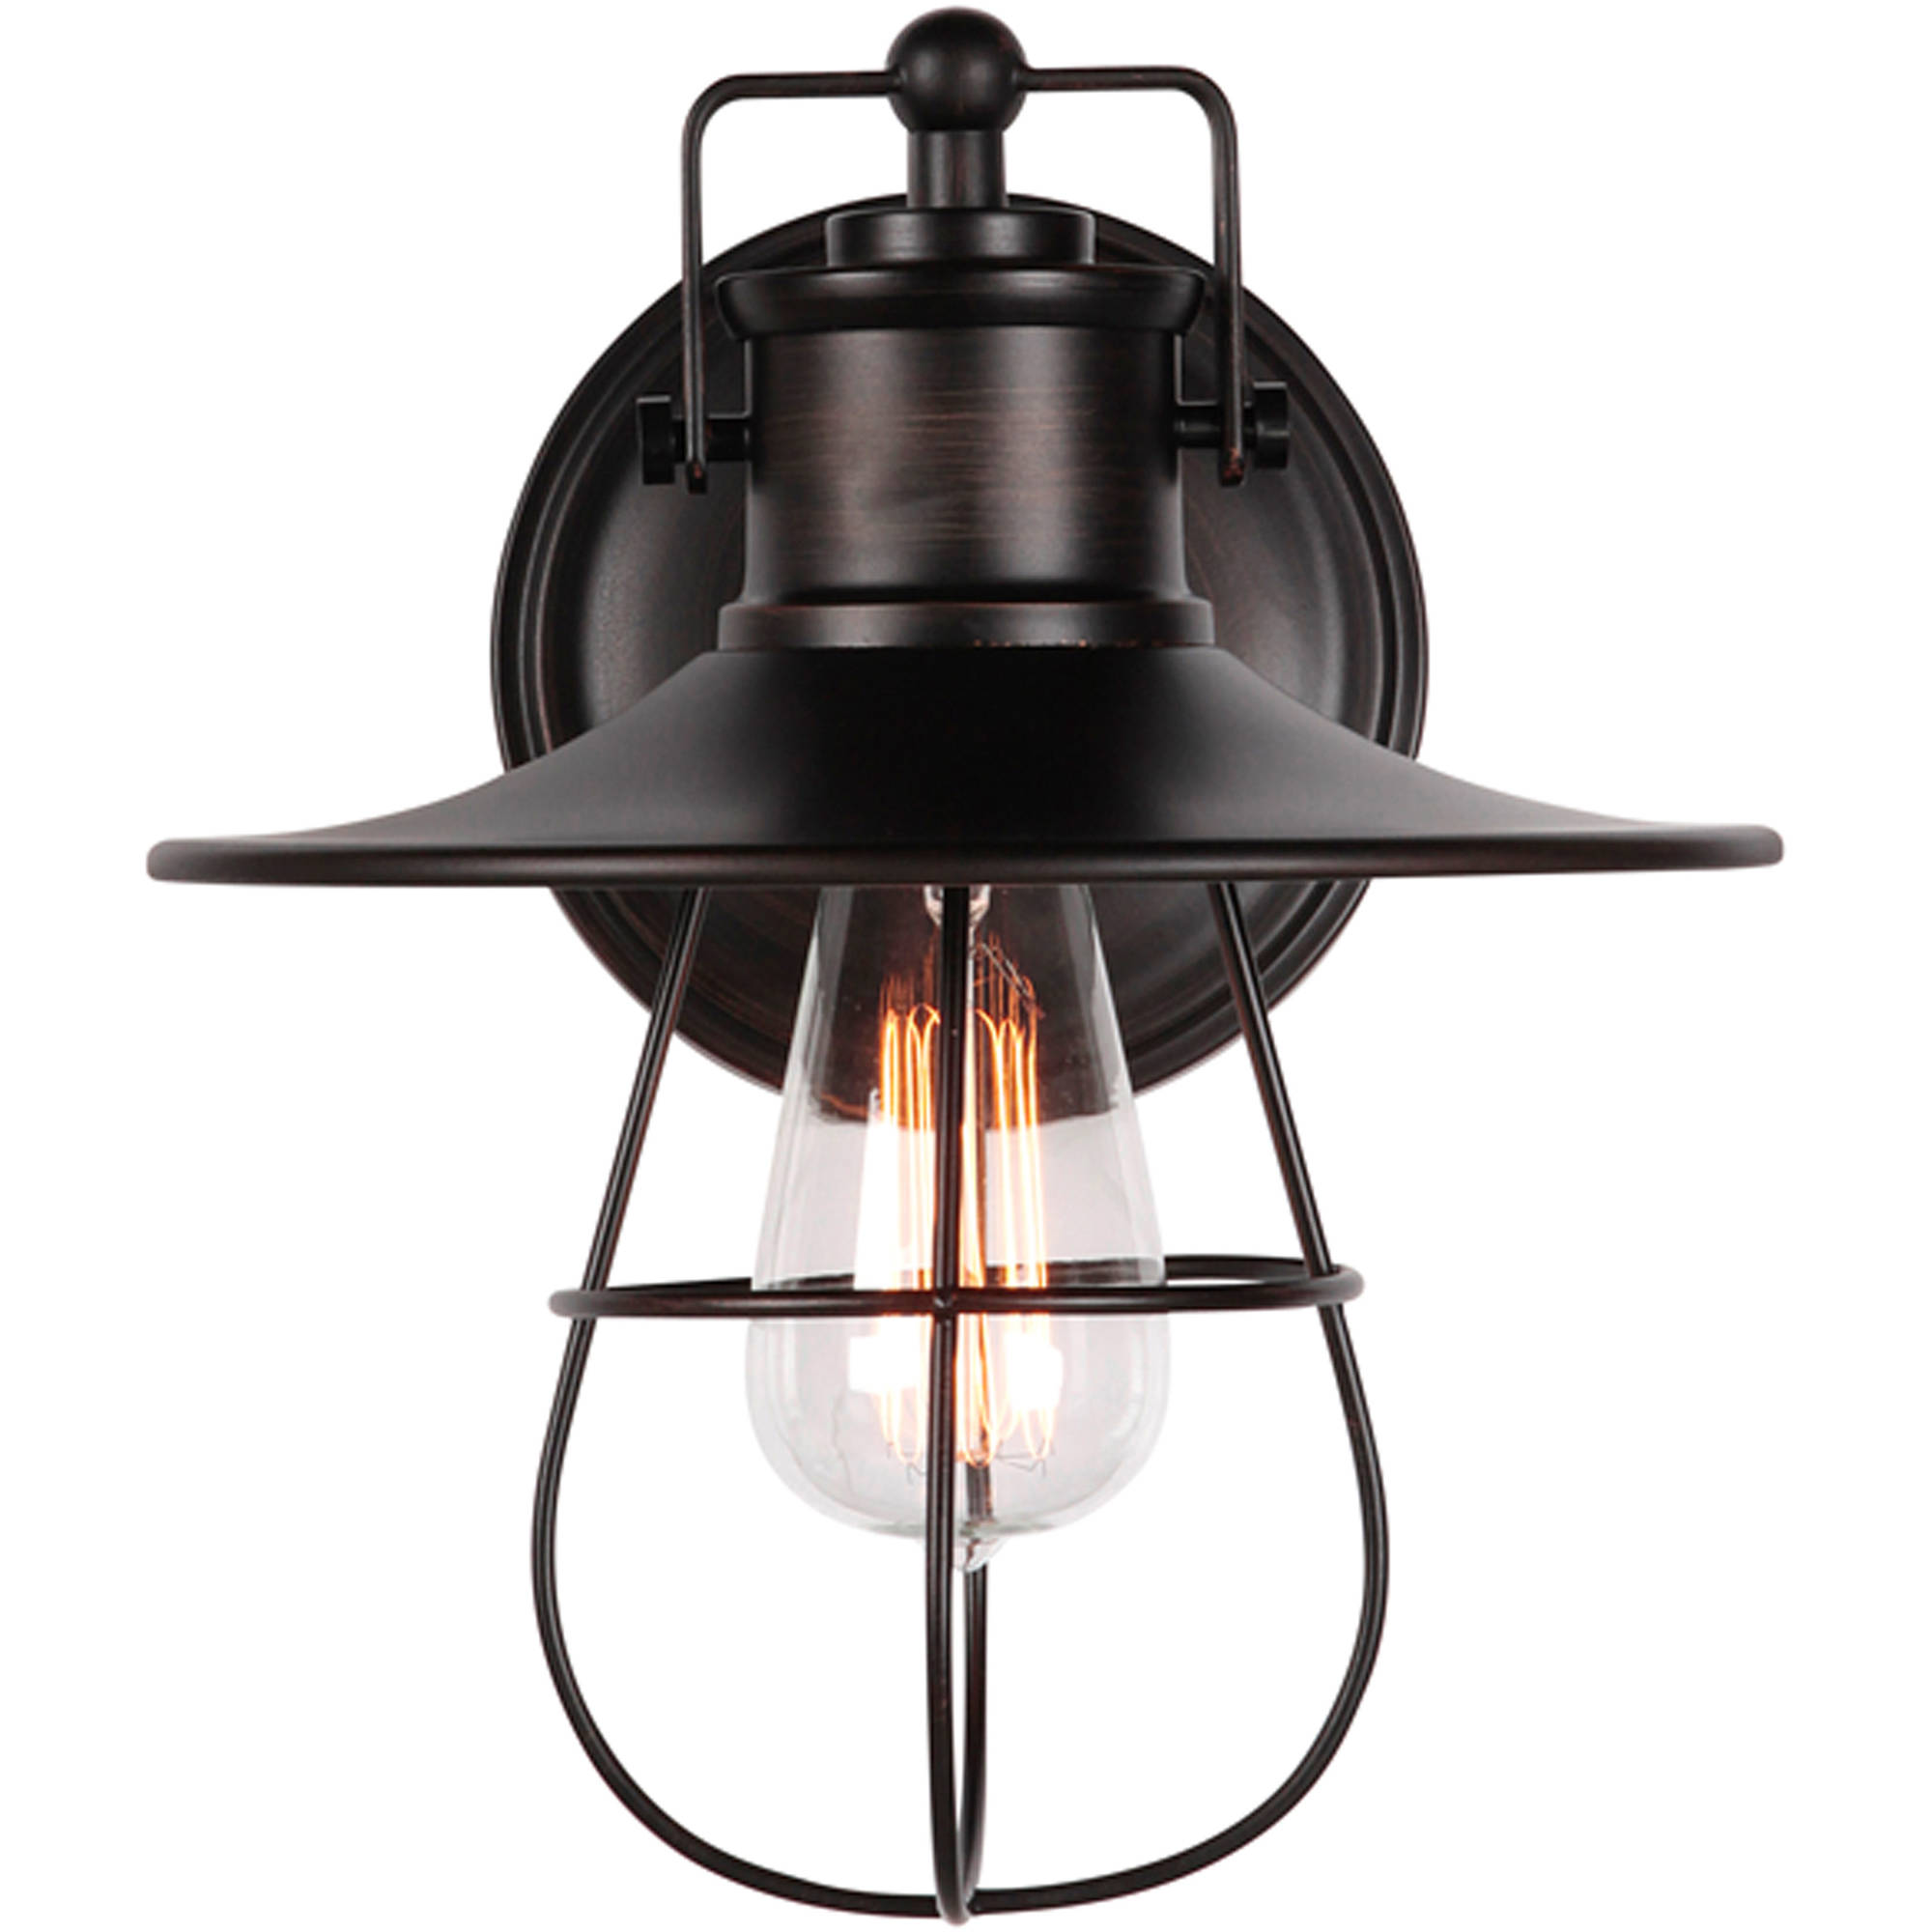 outdoor coach interesting inspiration commercial lamp photograph lighting lights carriage